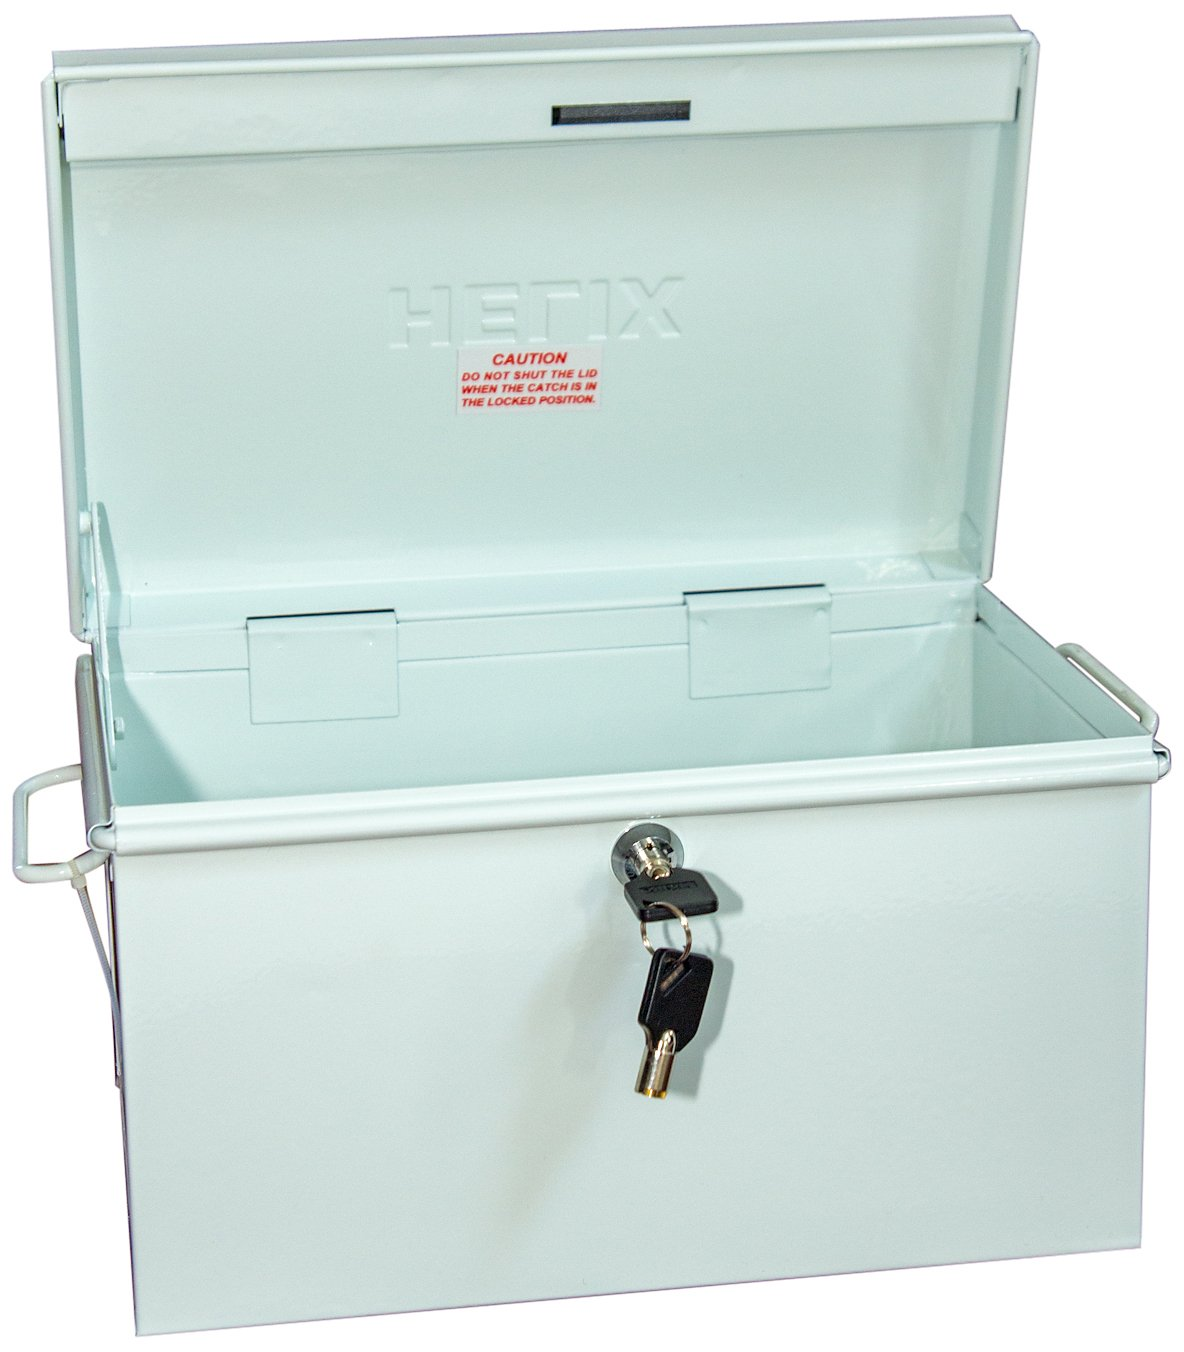 Helix Locking Prescription Drug Security Chest with Tether, Heavy-Duty Steel Construction, White (32480) by Maped Helix USA